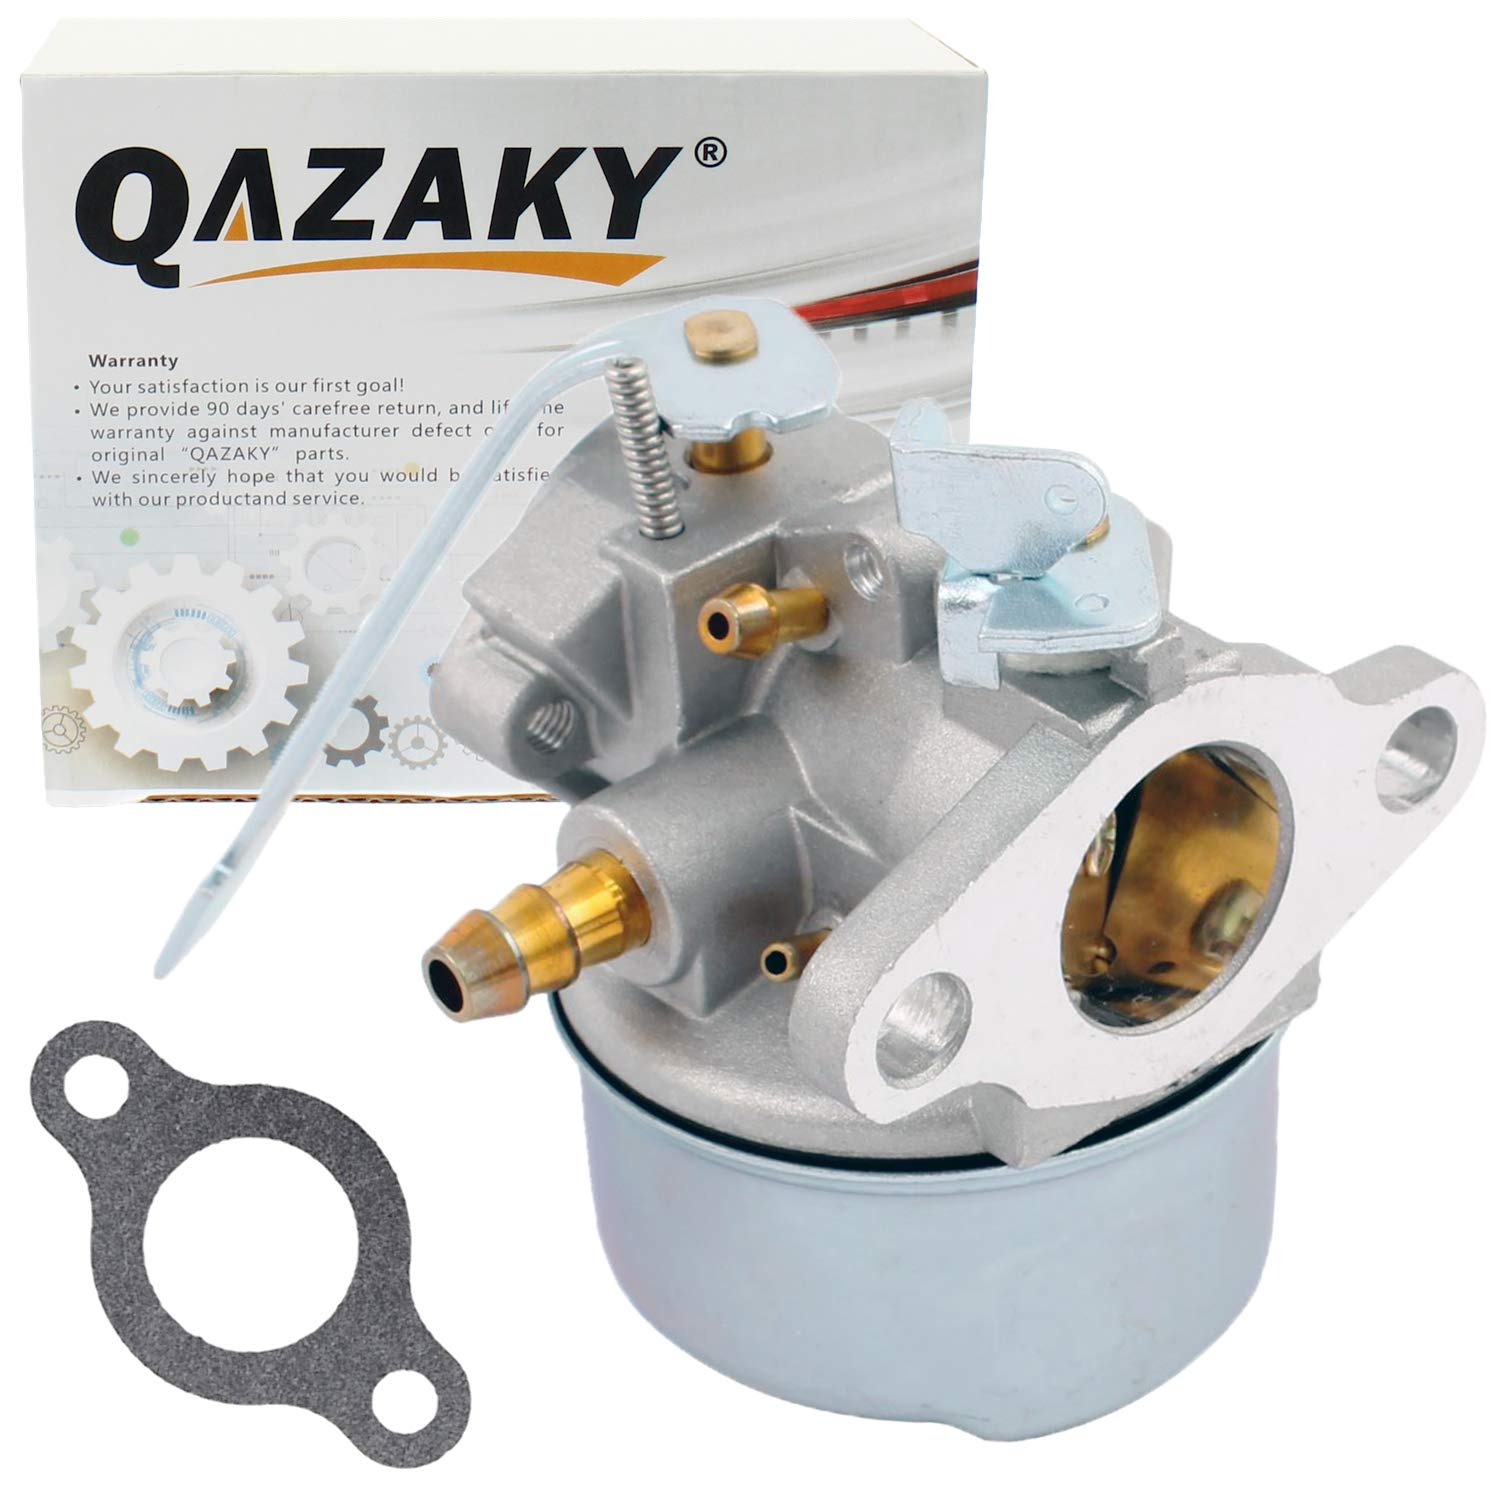 QAZAKY Carburetor Replacement for Tecumseh 632552 632557 632557A 632560 632560A 632641 640086 640086A 640092 640092A 640098 640098A 640311 HSK600 HSK635 TH098SA 3HP 3.25HP 3.5HP 3.75HP Snowblower Carb